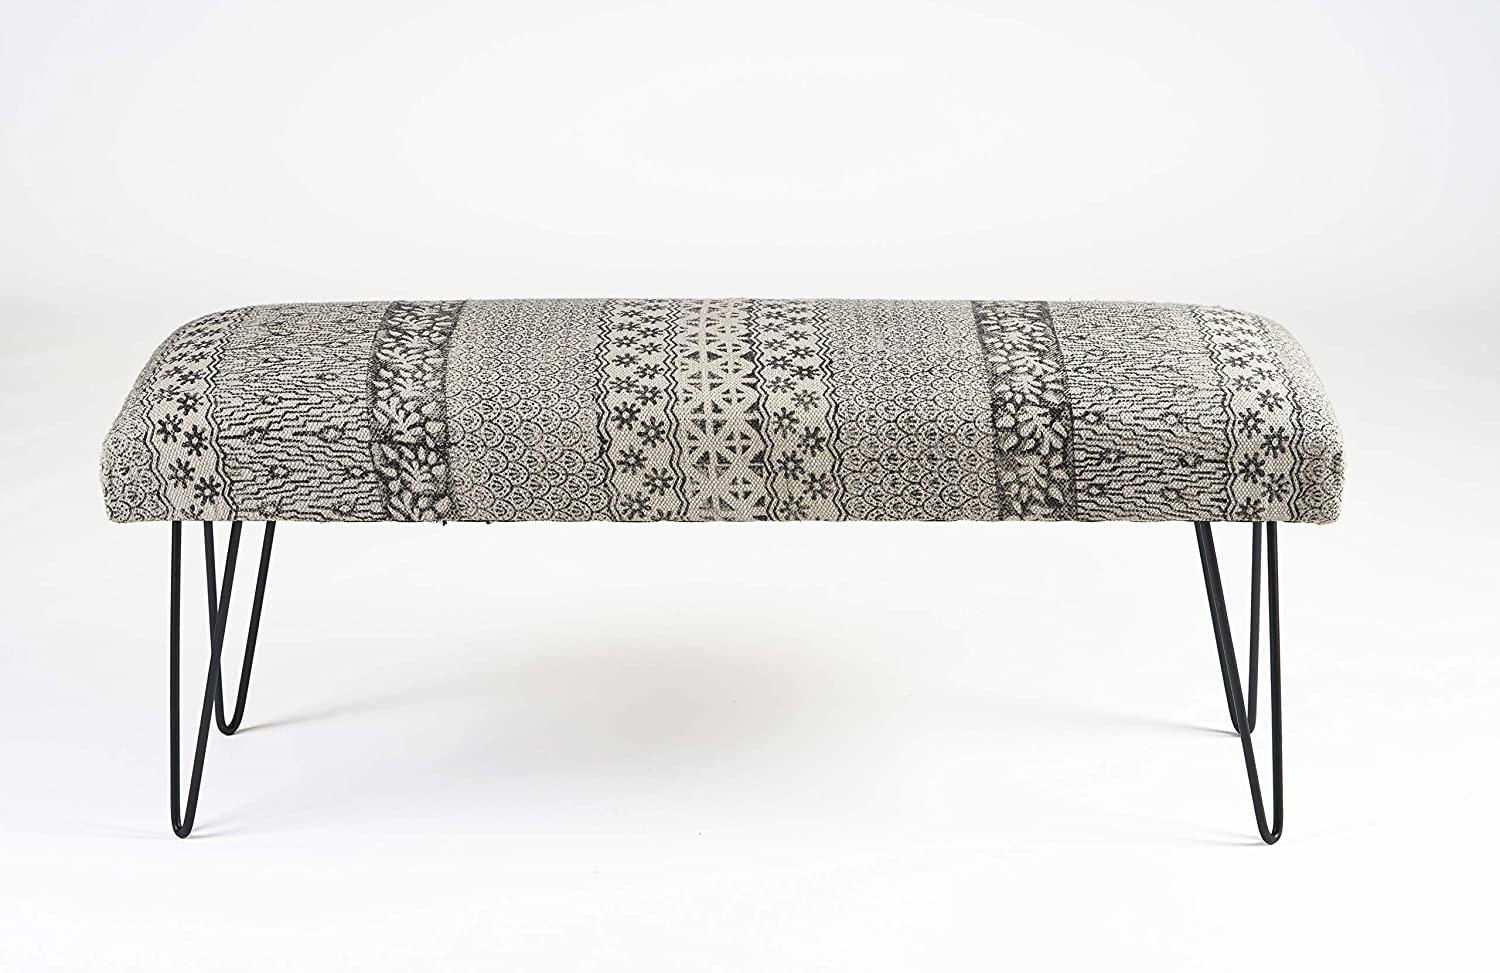 LR Home Black and White Indoor Bench, 3'11